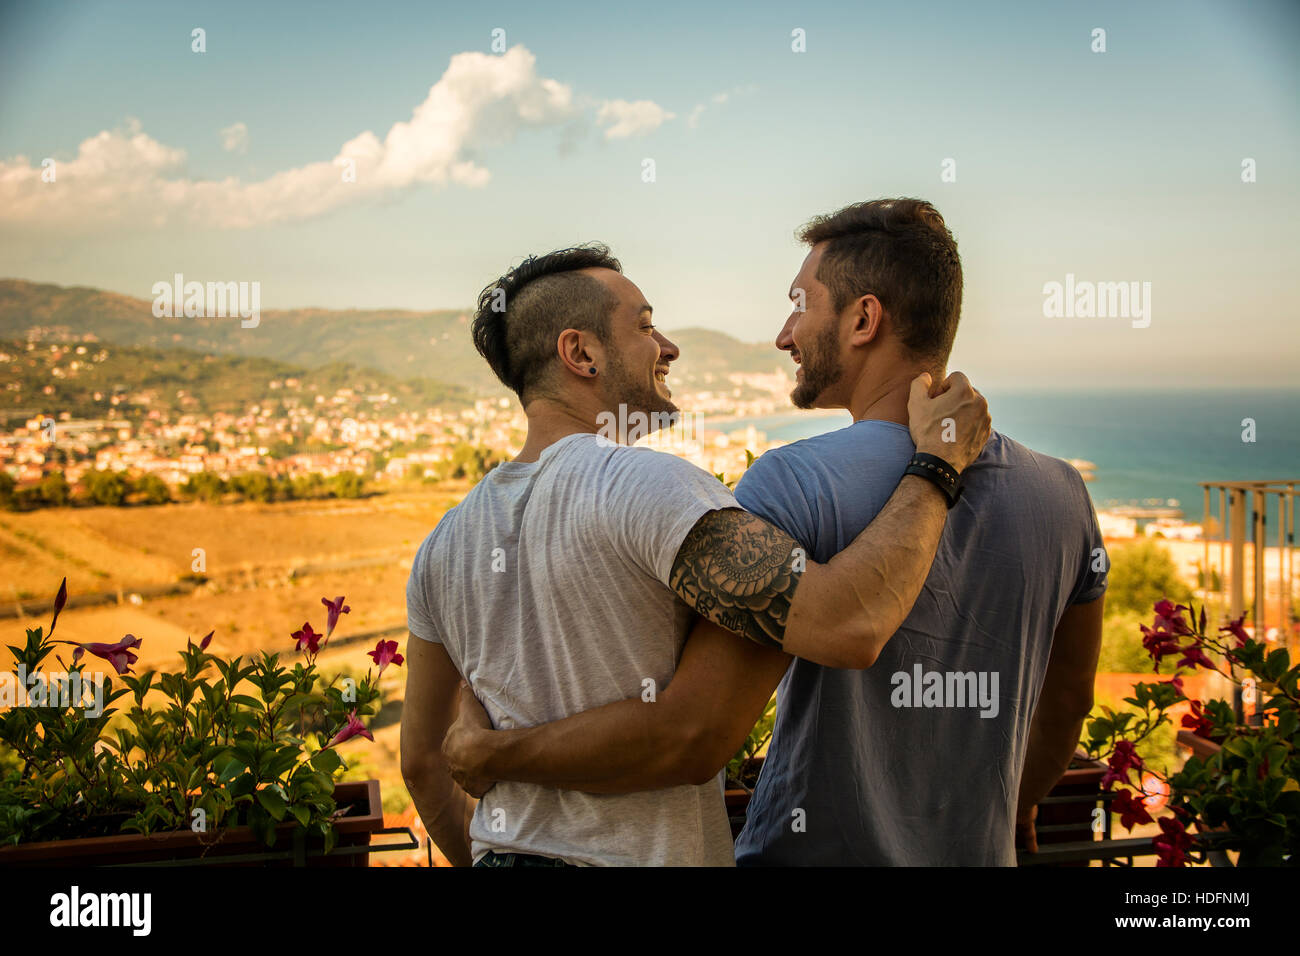 Back view of homosexual couple embracing nd looking at each other on background of resort. - Stock Image